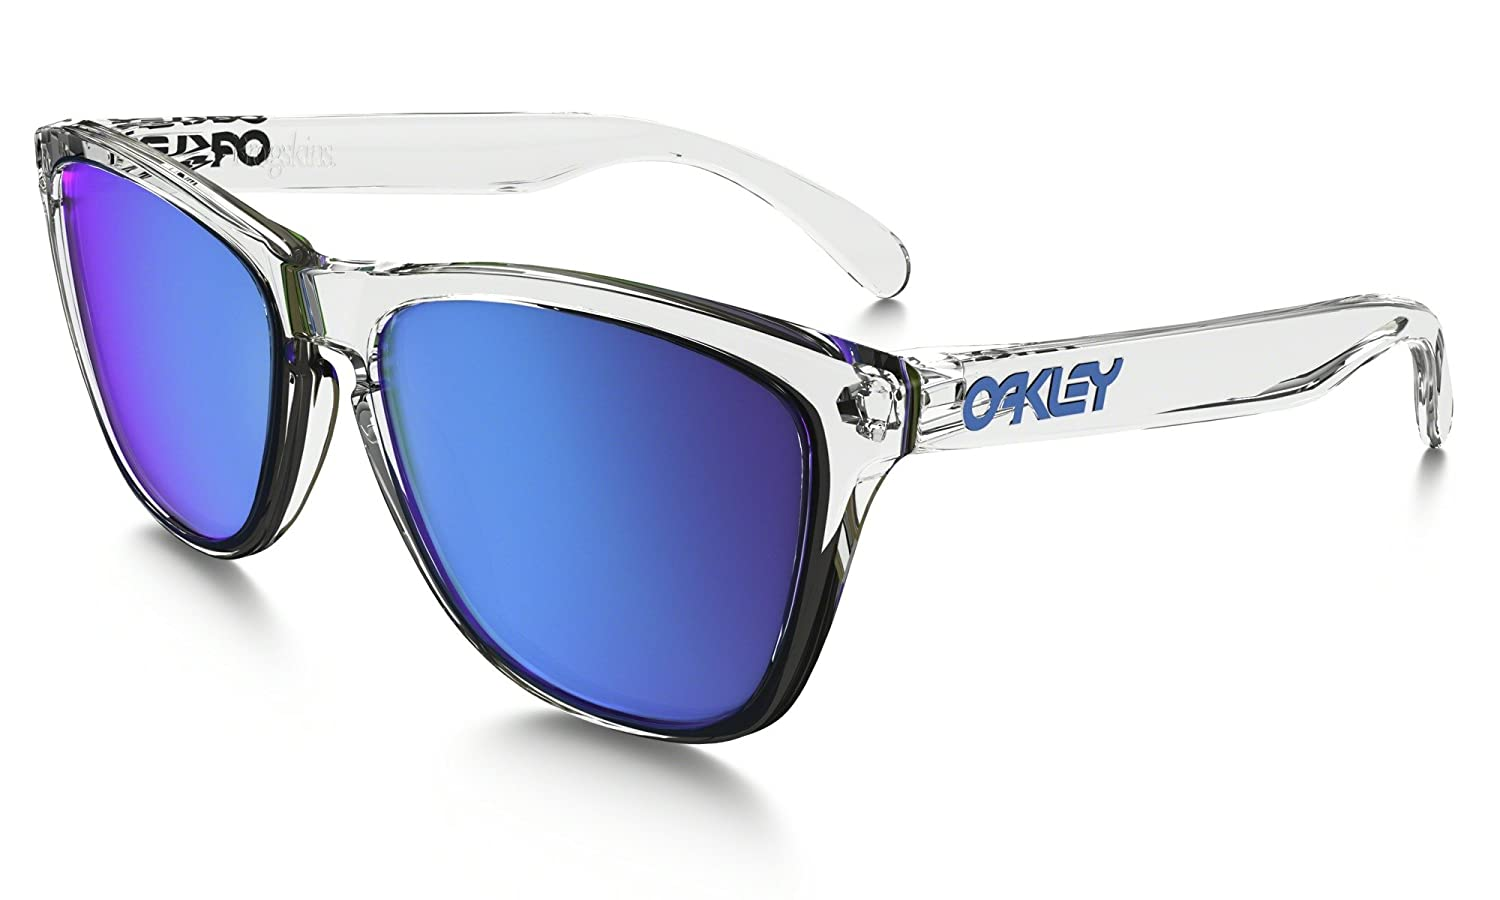 Oakley Frogskins Crystal Collection Sunglasses in Polished Crystal with  Sapphire Iridium Lens  Amazon.co.uk  Sports   Outdoors af6d91da85